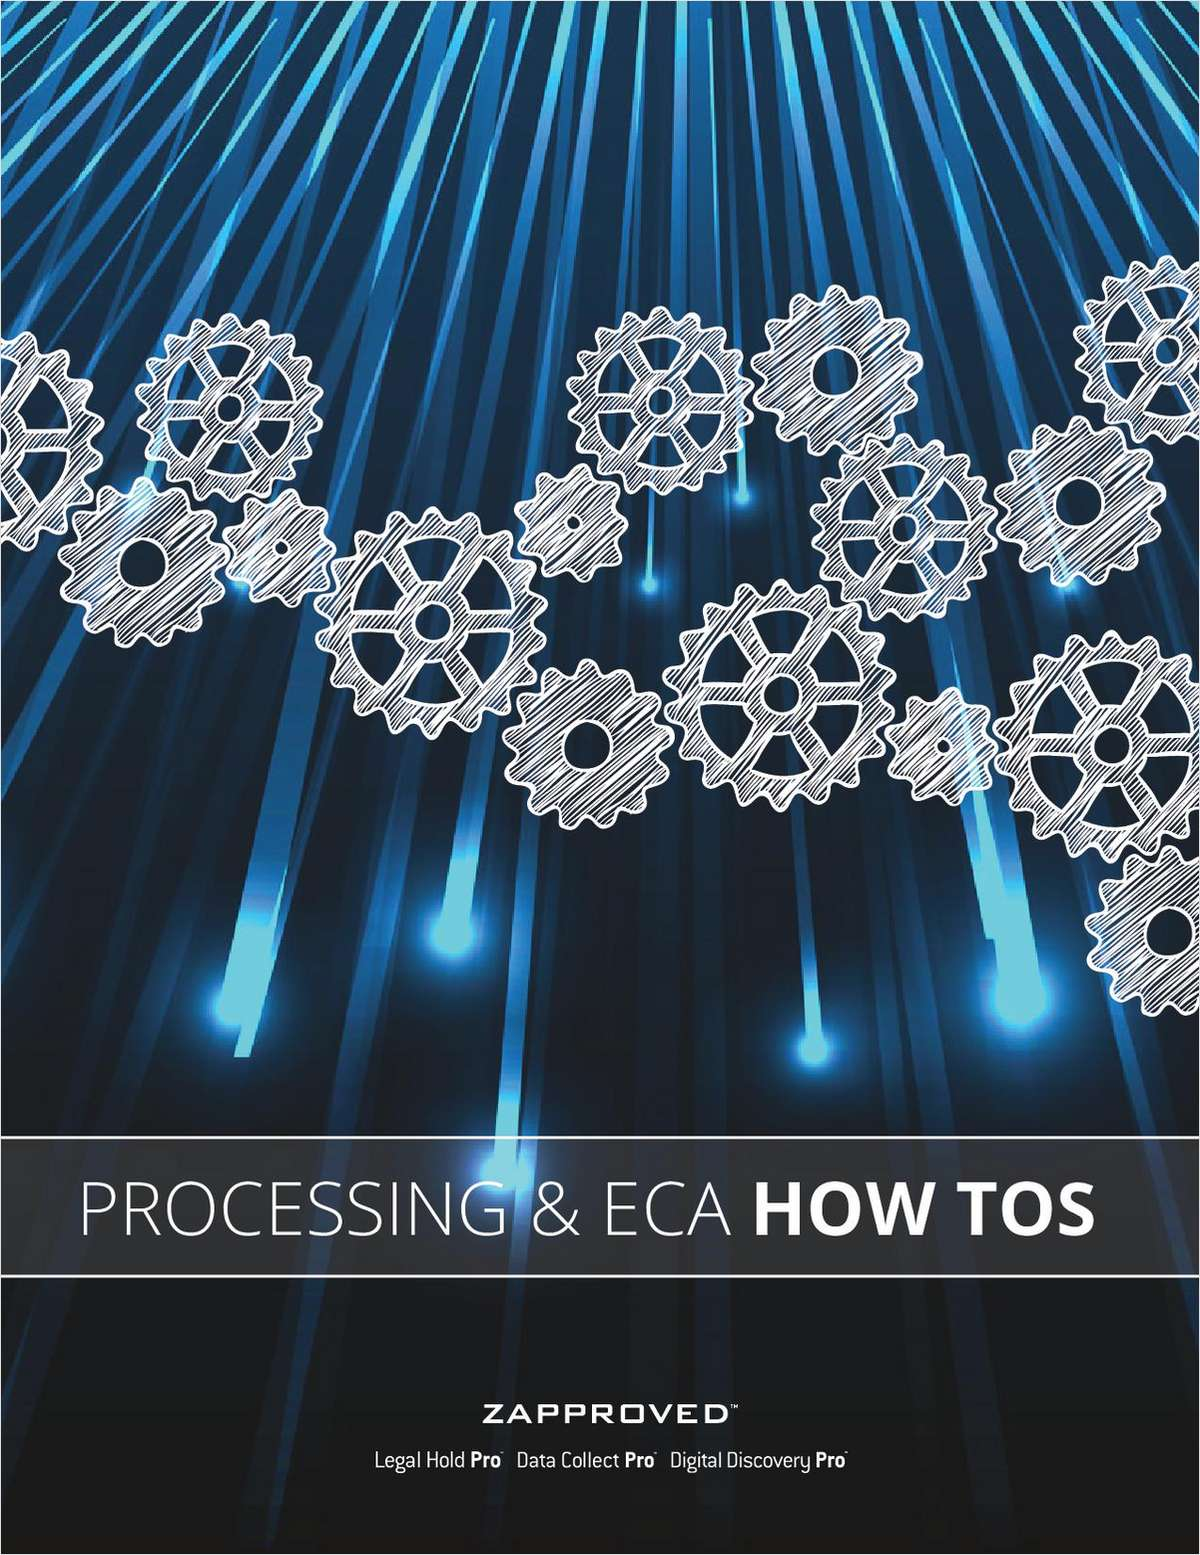 12 Processing & Early Case Assessment How Tos